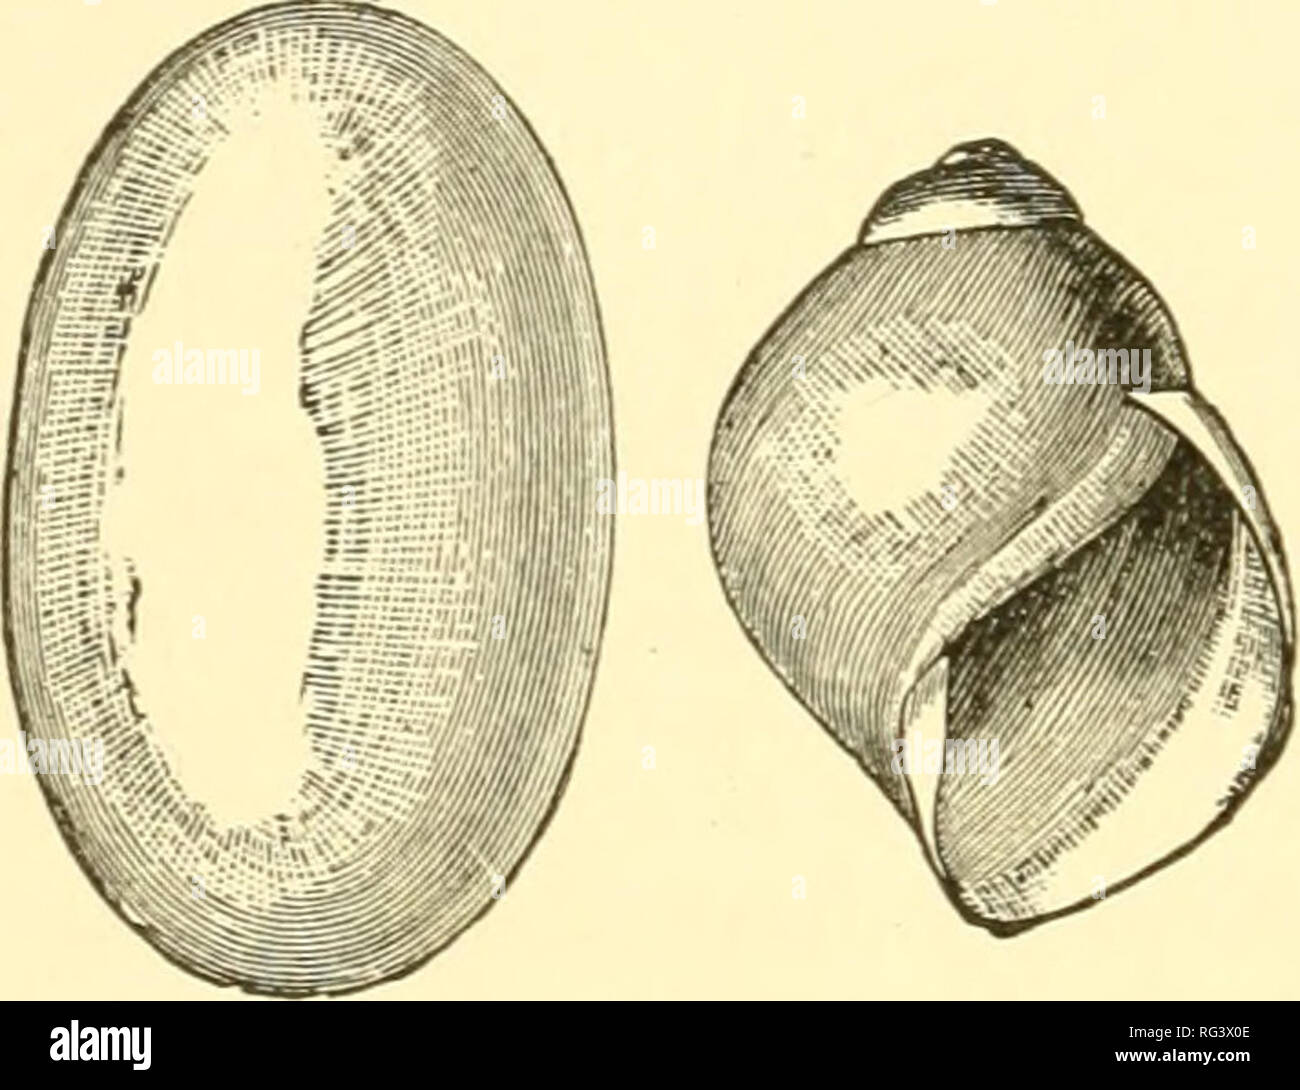 . The Cambridge natural history. Zoology; Zoologia Geral. 124 ^^^^ ^^ LAND PULMONATA chap. of Helix aspersa have been noticed, in which the number of eggs varied from about 40 to 100. They are laid in little cup-shaped hollows at the roots of grass, with a little loose earth spread over them. The eggs of Testacella are rather large, and very elastic; if dropped on a stone floor they will rebound sharply several inches. The CocJilostyla of the Philippines lay their eggs at the tops of the great forest trees, folding a leaf together to serve as a protection. The eggs of the great tropical Bulimu - Stock Image